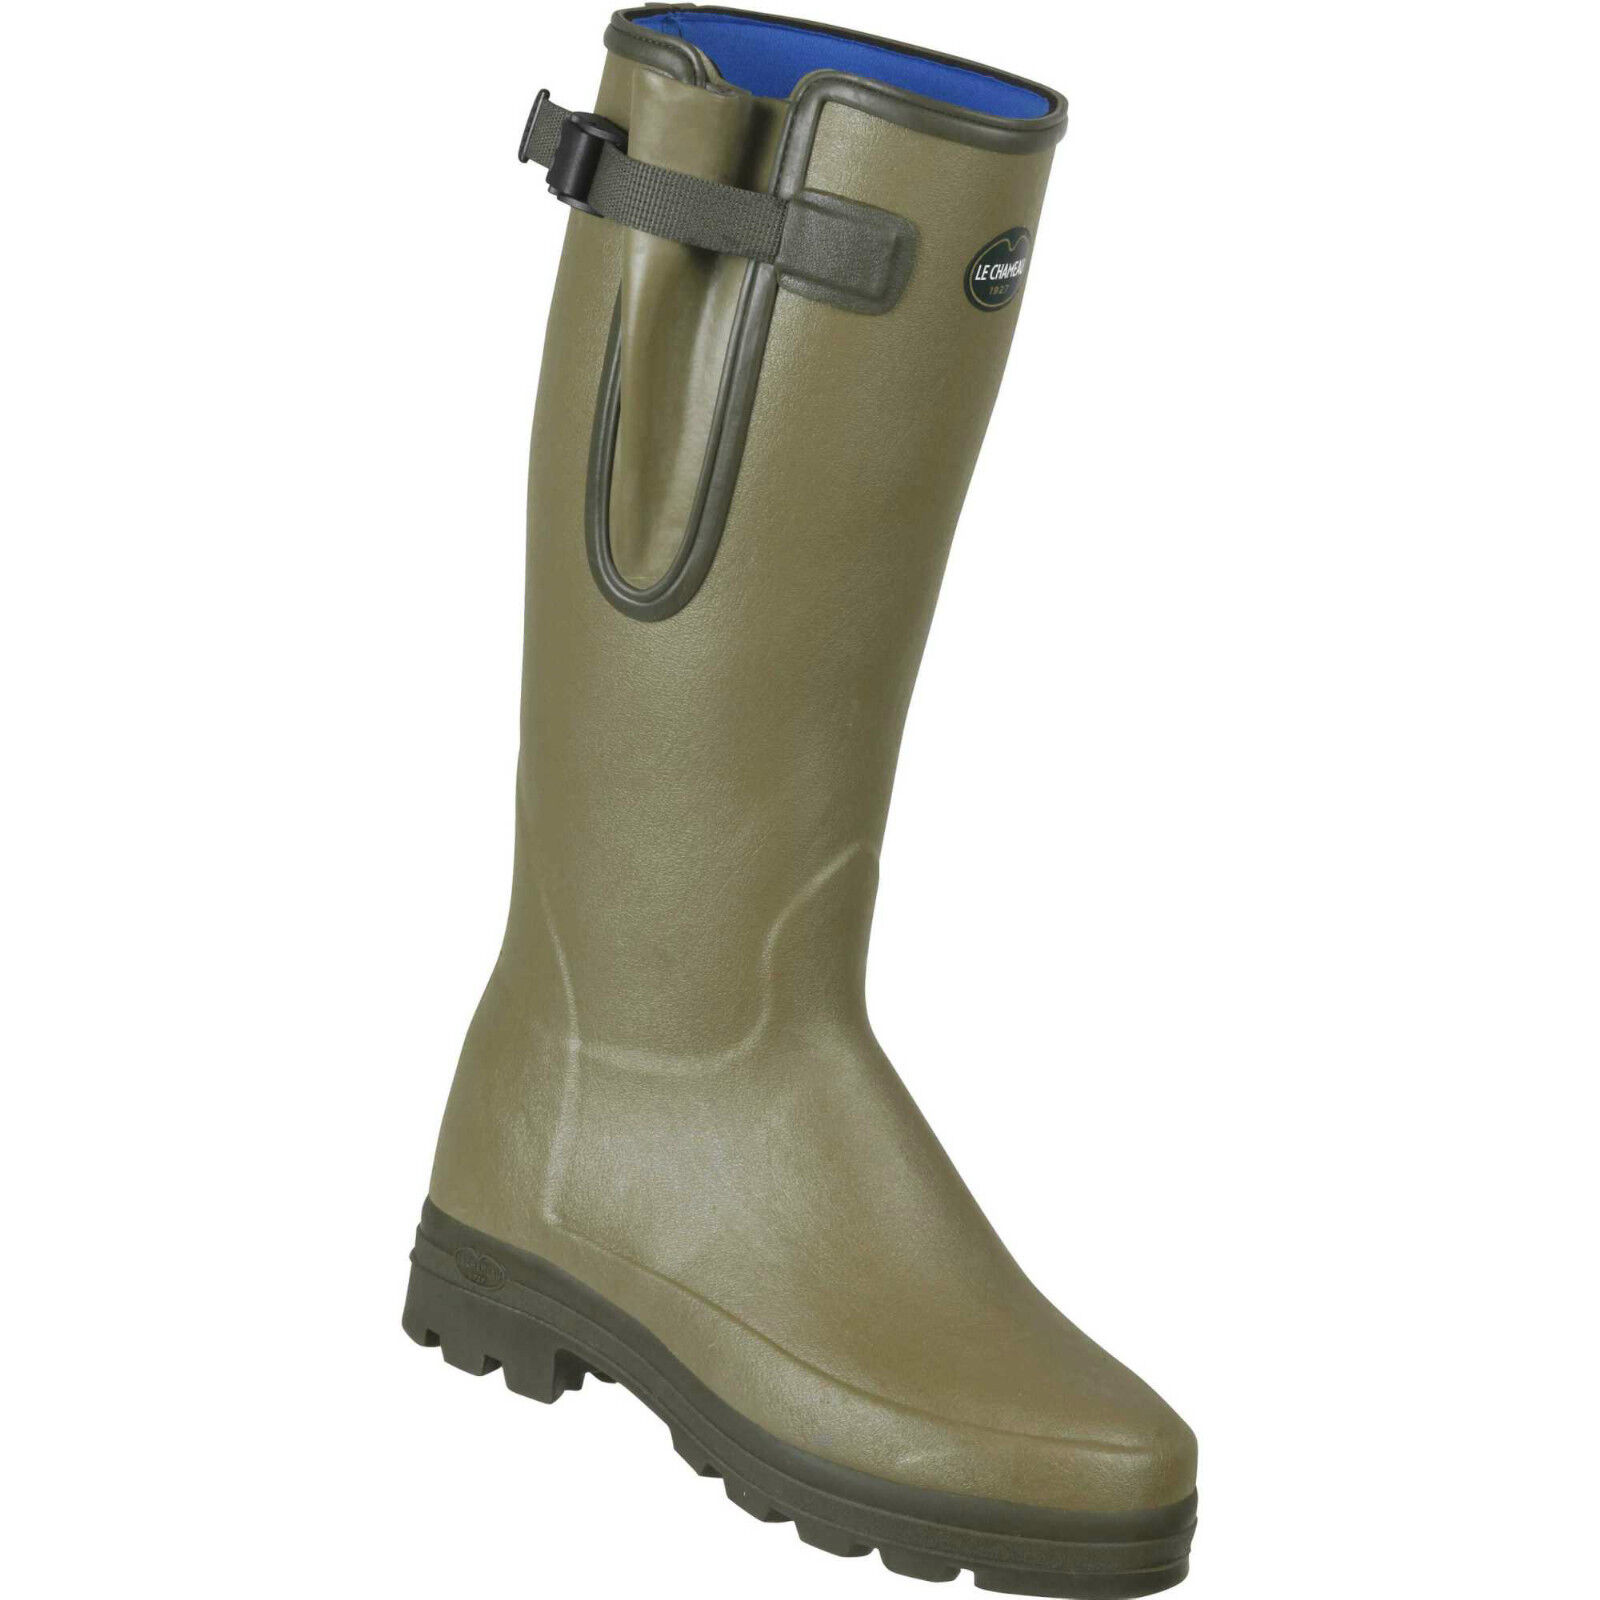 Le Chameau Vierzonords - Mens Neoprene lined Wellingtons Boots FREE UK Postage